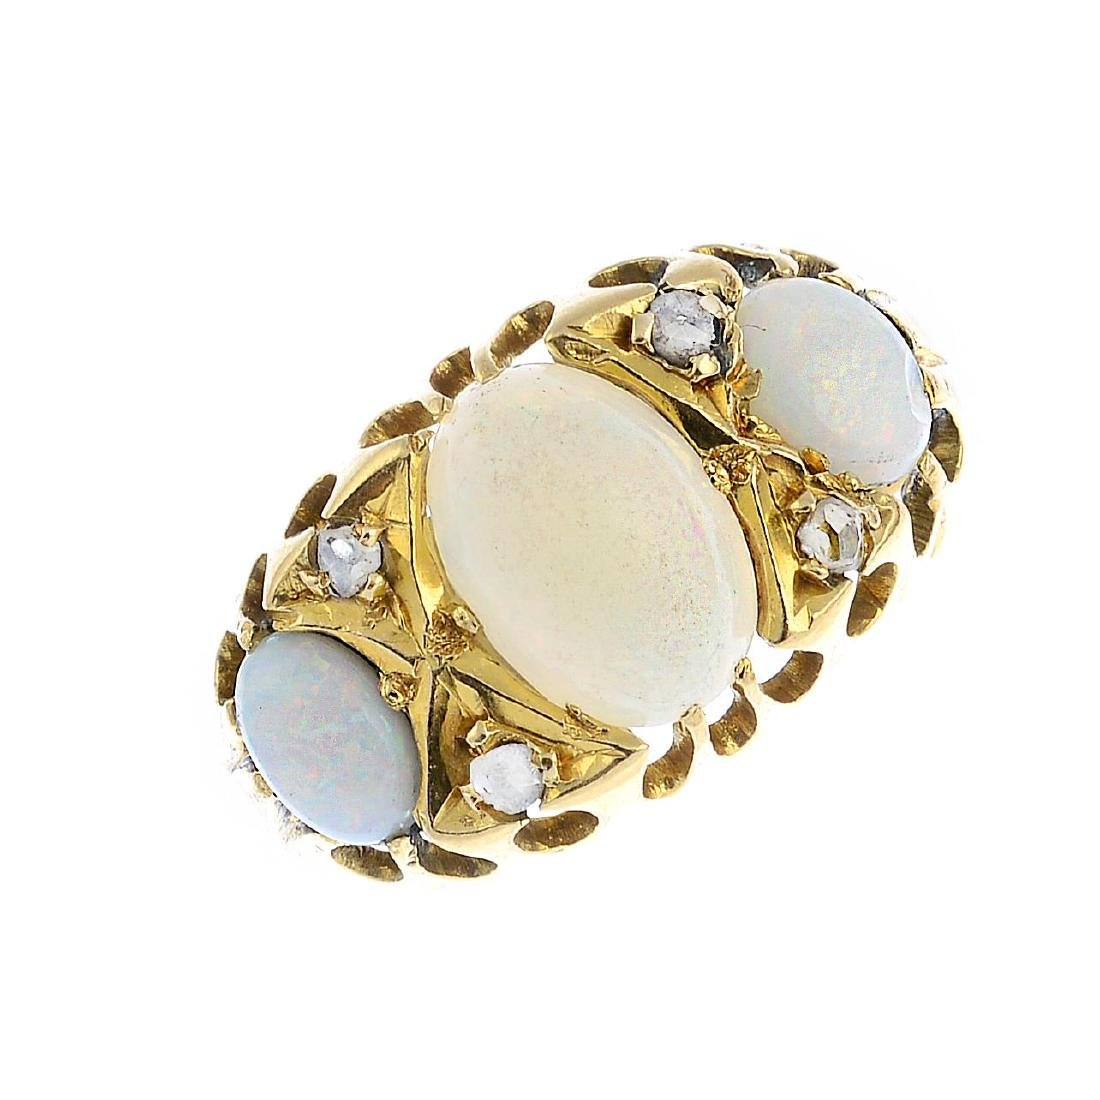 An Edwardian 18ct gold opal and diamond ring. The